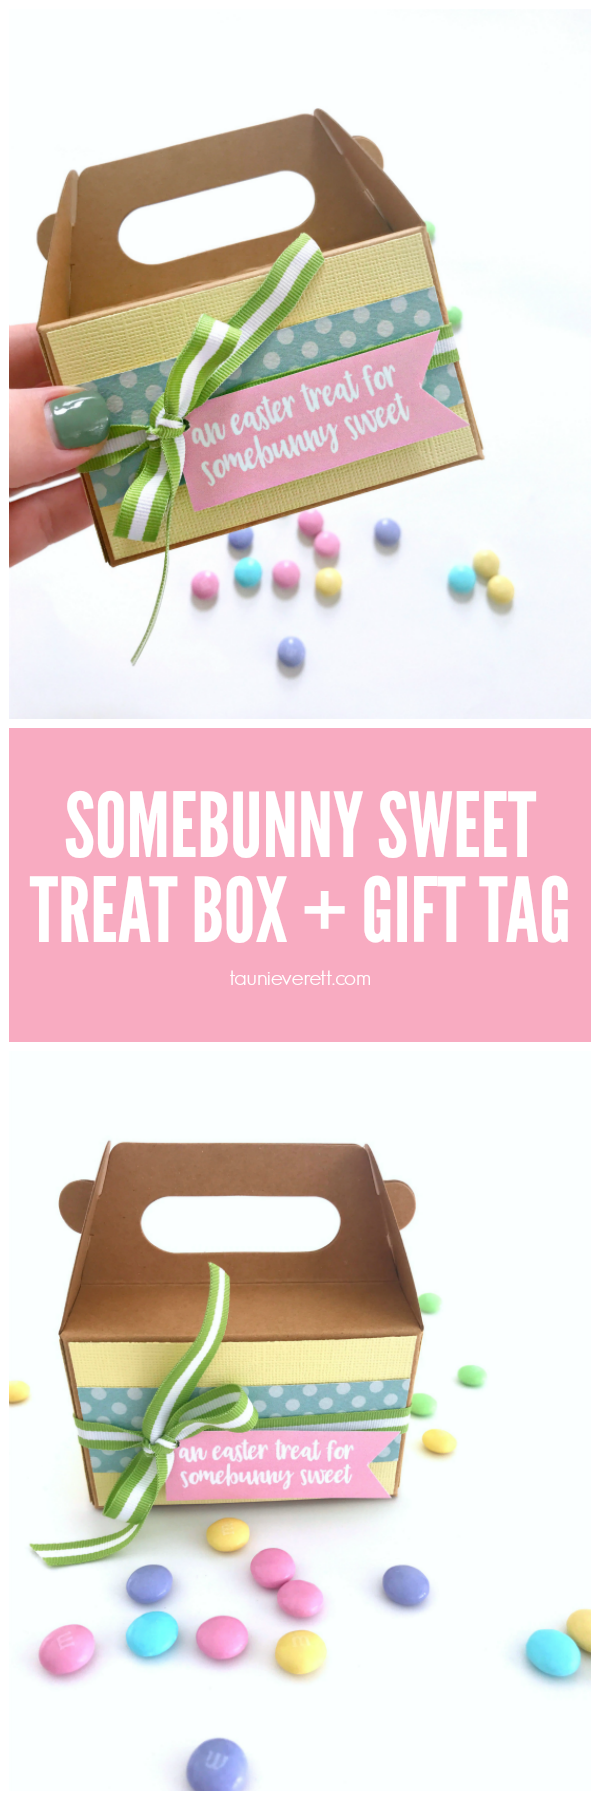 Somebunny Sweet Gift Tag and treat box idea for Easter #printable #easter #gifttag #eastergift